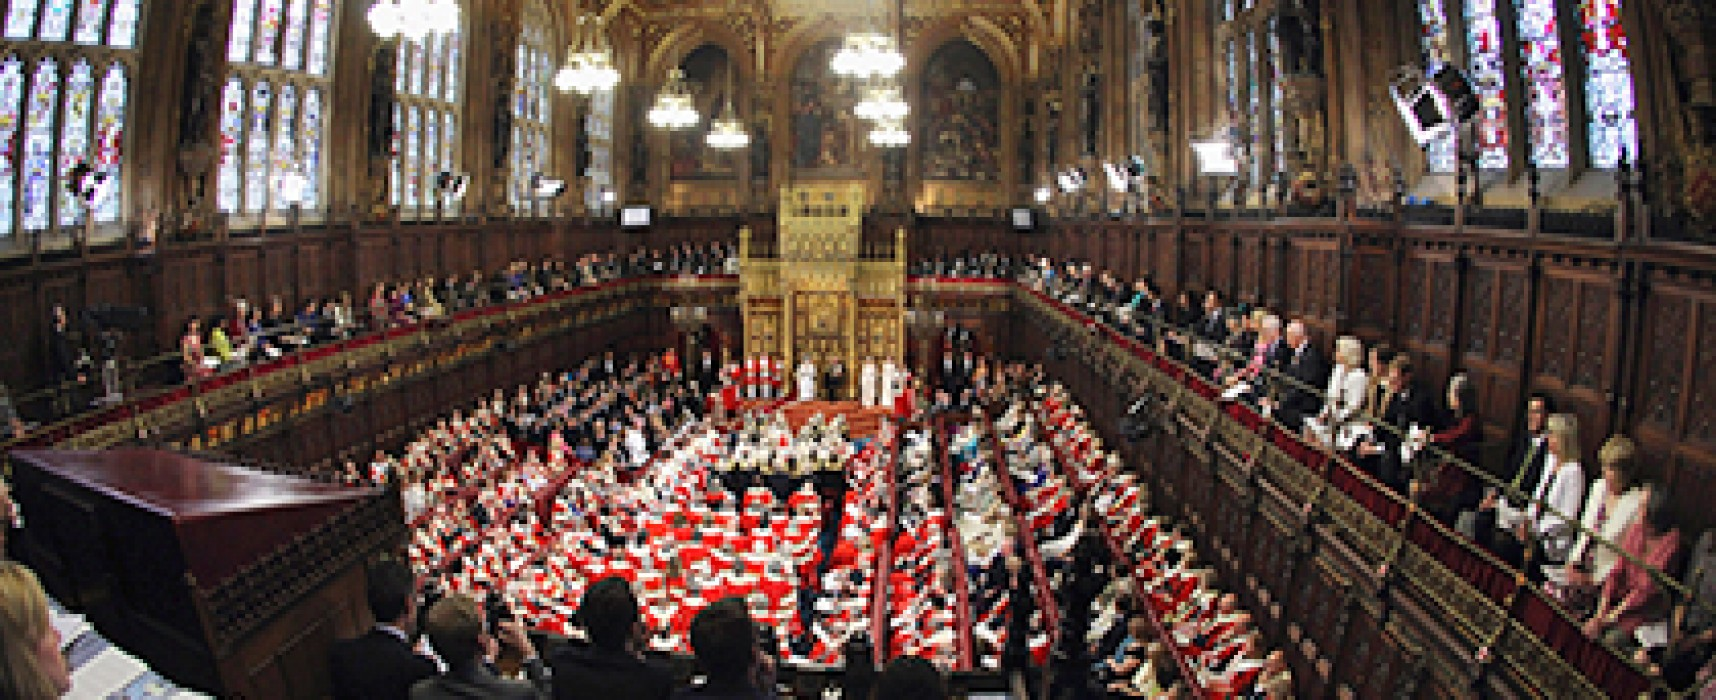 Fake: British Parliament Members Denounce EU Interference in Ukraine